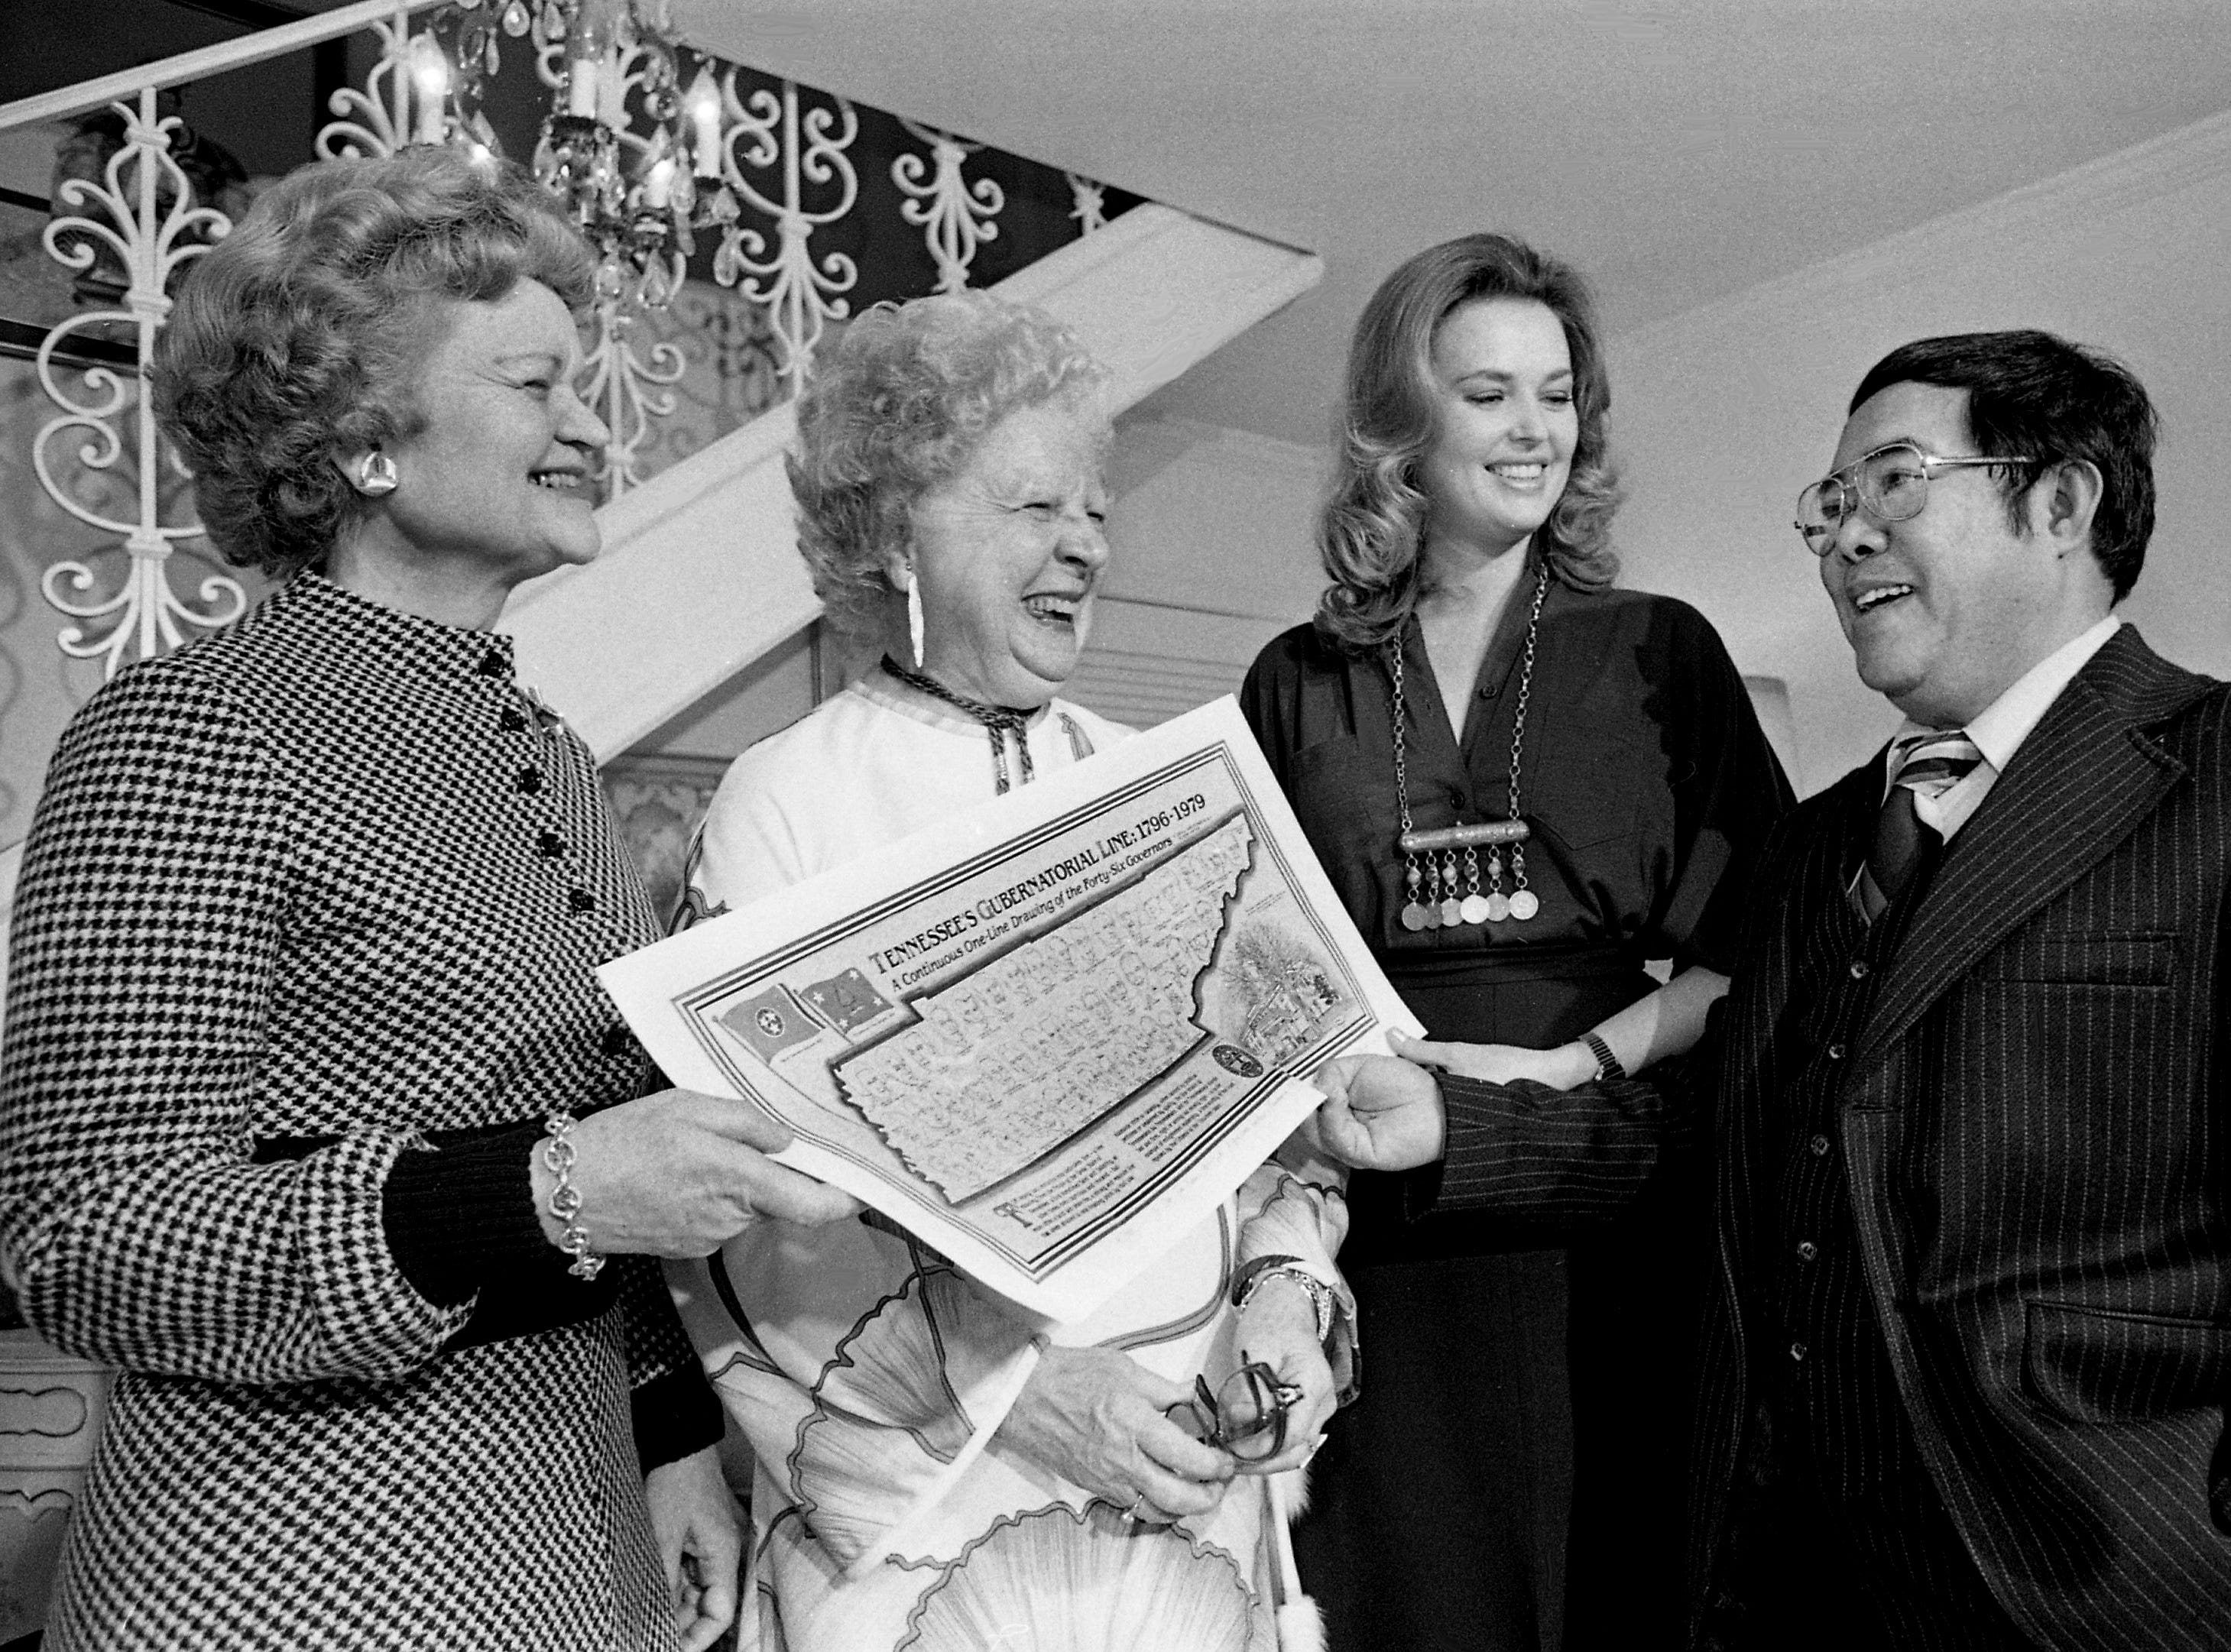 "Former Tennessee first ladies Mrs. Prentice Cooper, left, and Mrs. Jim Nance McCord and Mrs. Timothy Wagner (Ann Ellington), daughter of former Gov. Buford Ellington, receive ""pictographs"" from Nashville artist Dani Aguila as an early Valentine's Day gift Feb. 13, 1979. The pictographs were of all 46 state governors, from John Sevier to Lamar Alexander, drawn in one continuous, unbroken line."